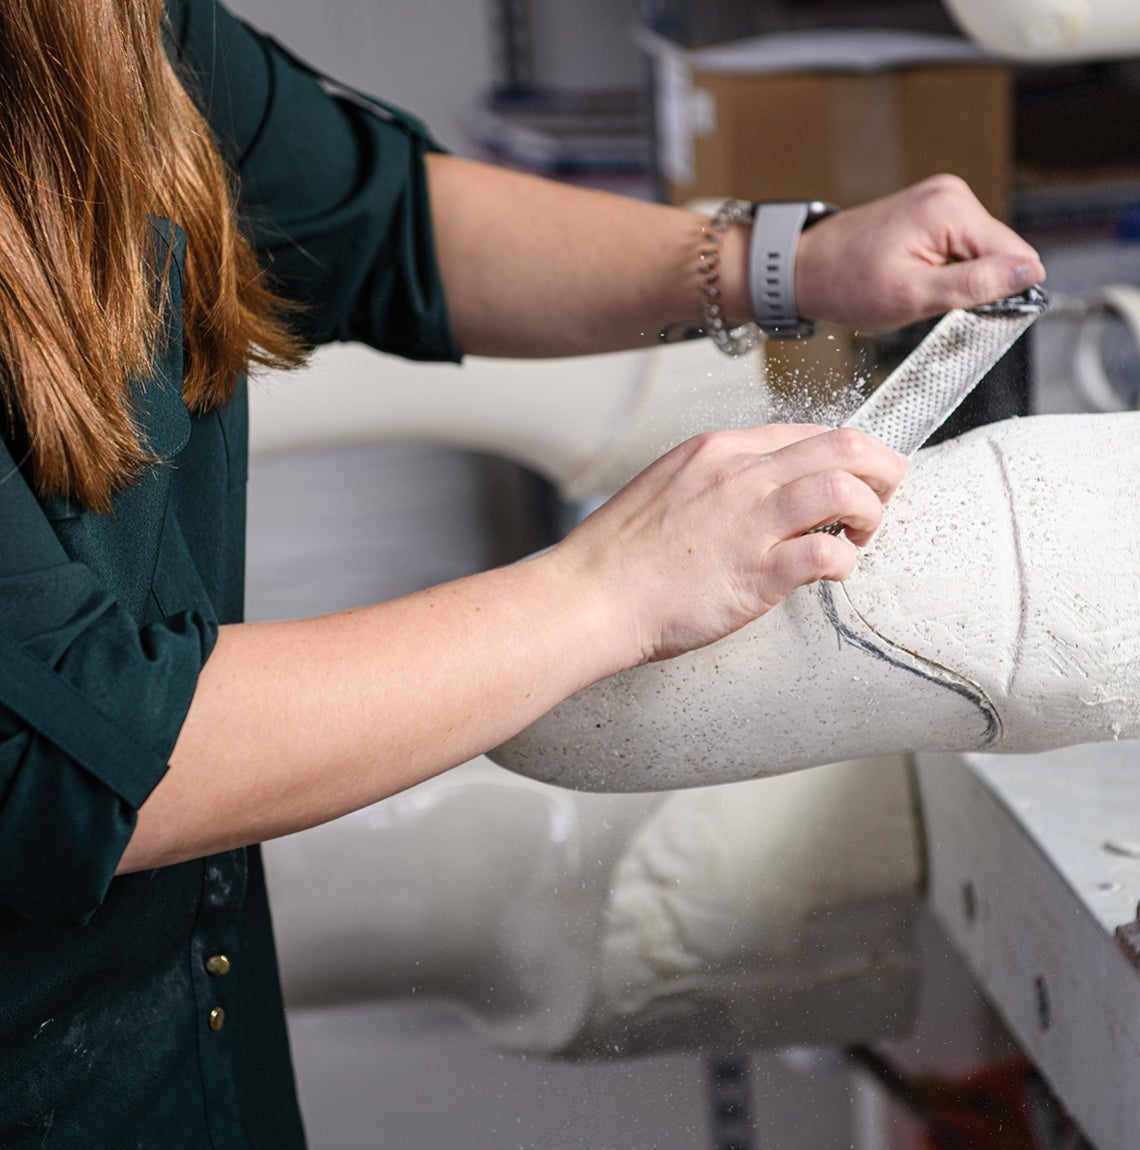 With the plaster cast of a patient's residual limb held in place on her work bench, Caulfield files the surface smooth.